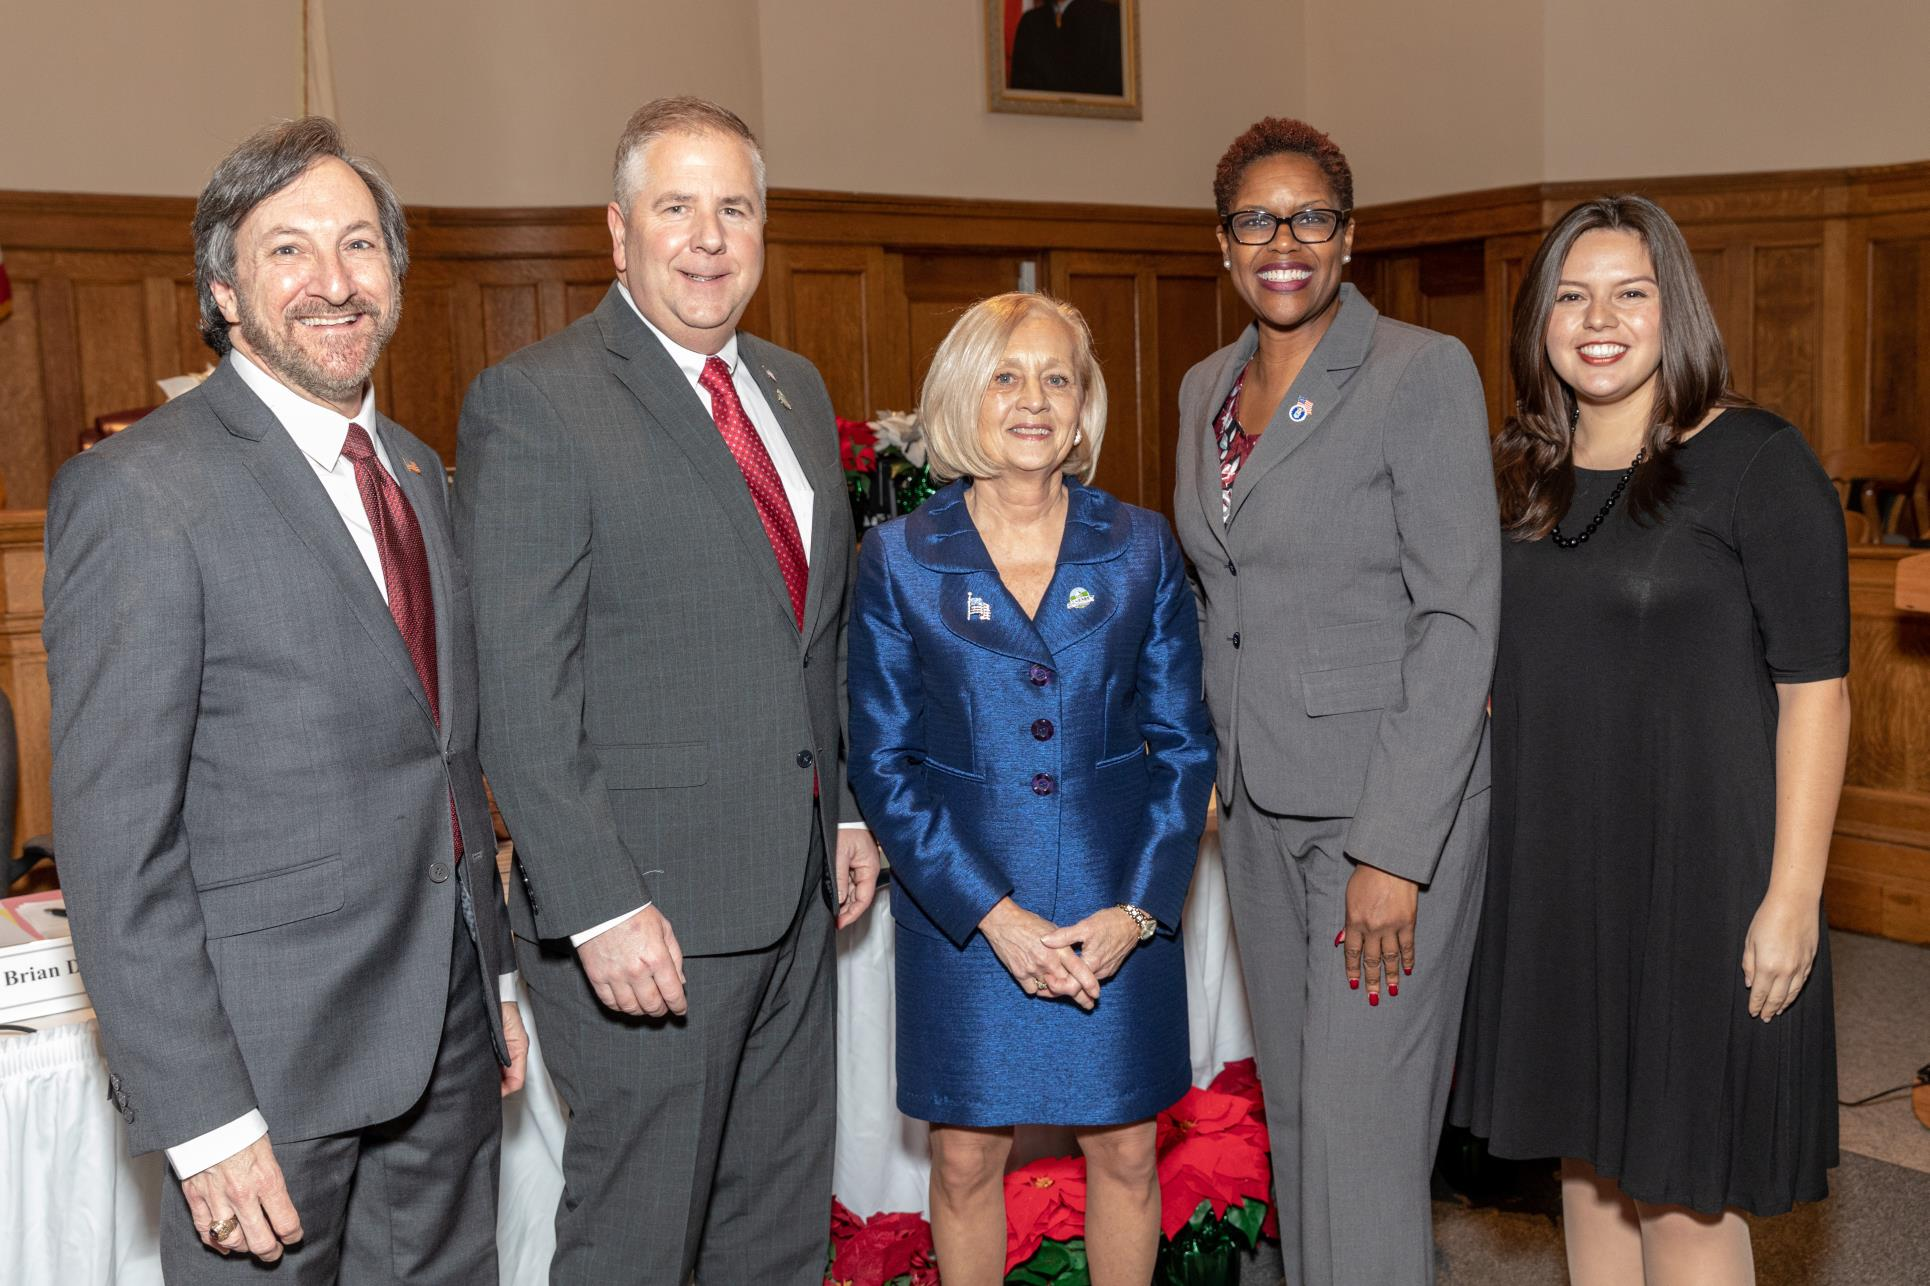 Freeholders, Levine, Gallagher, Walsh, Robinson, Sooy